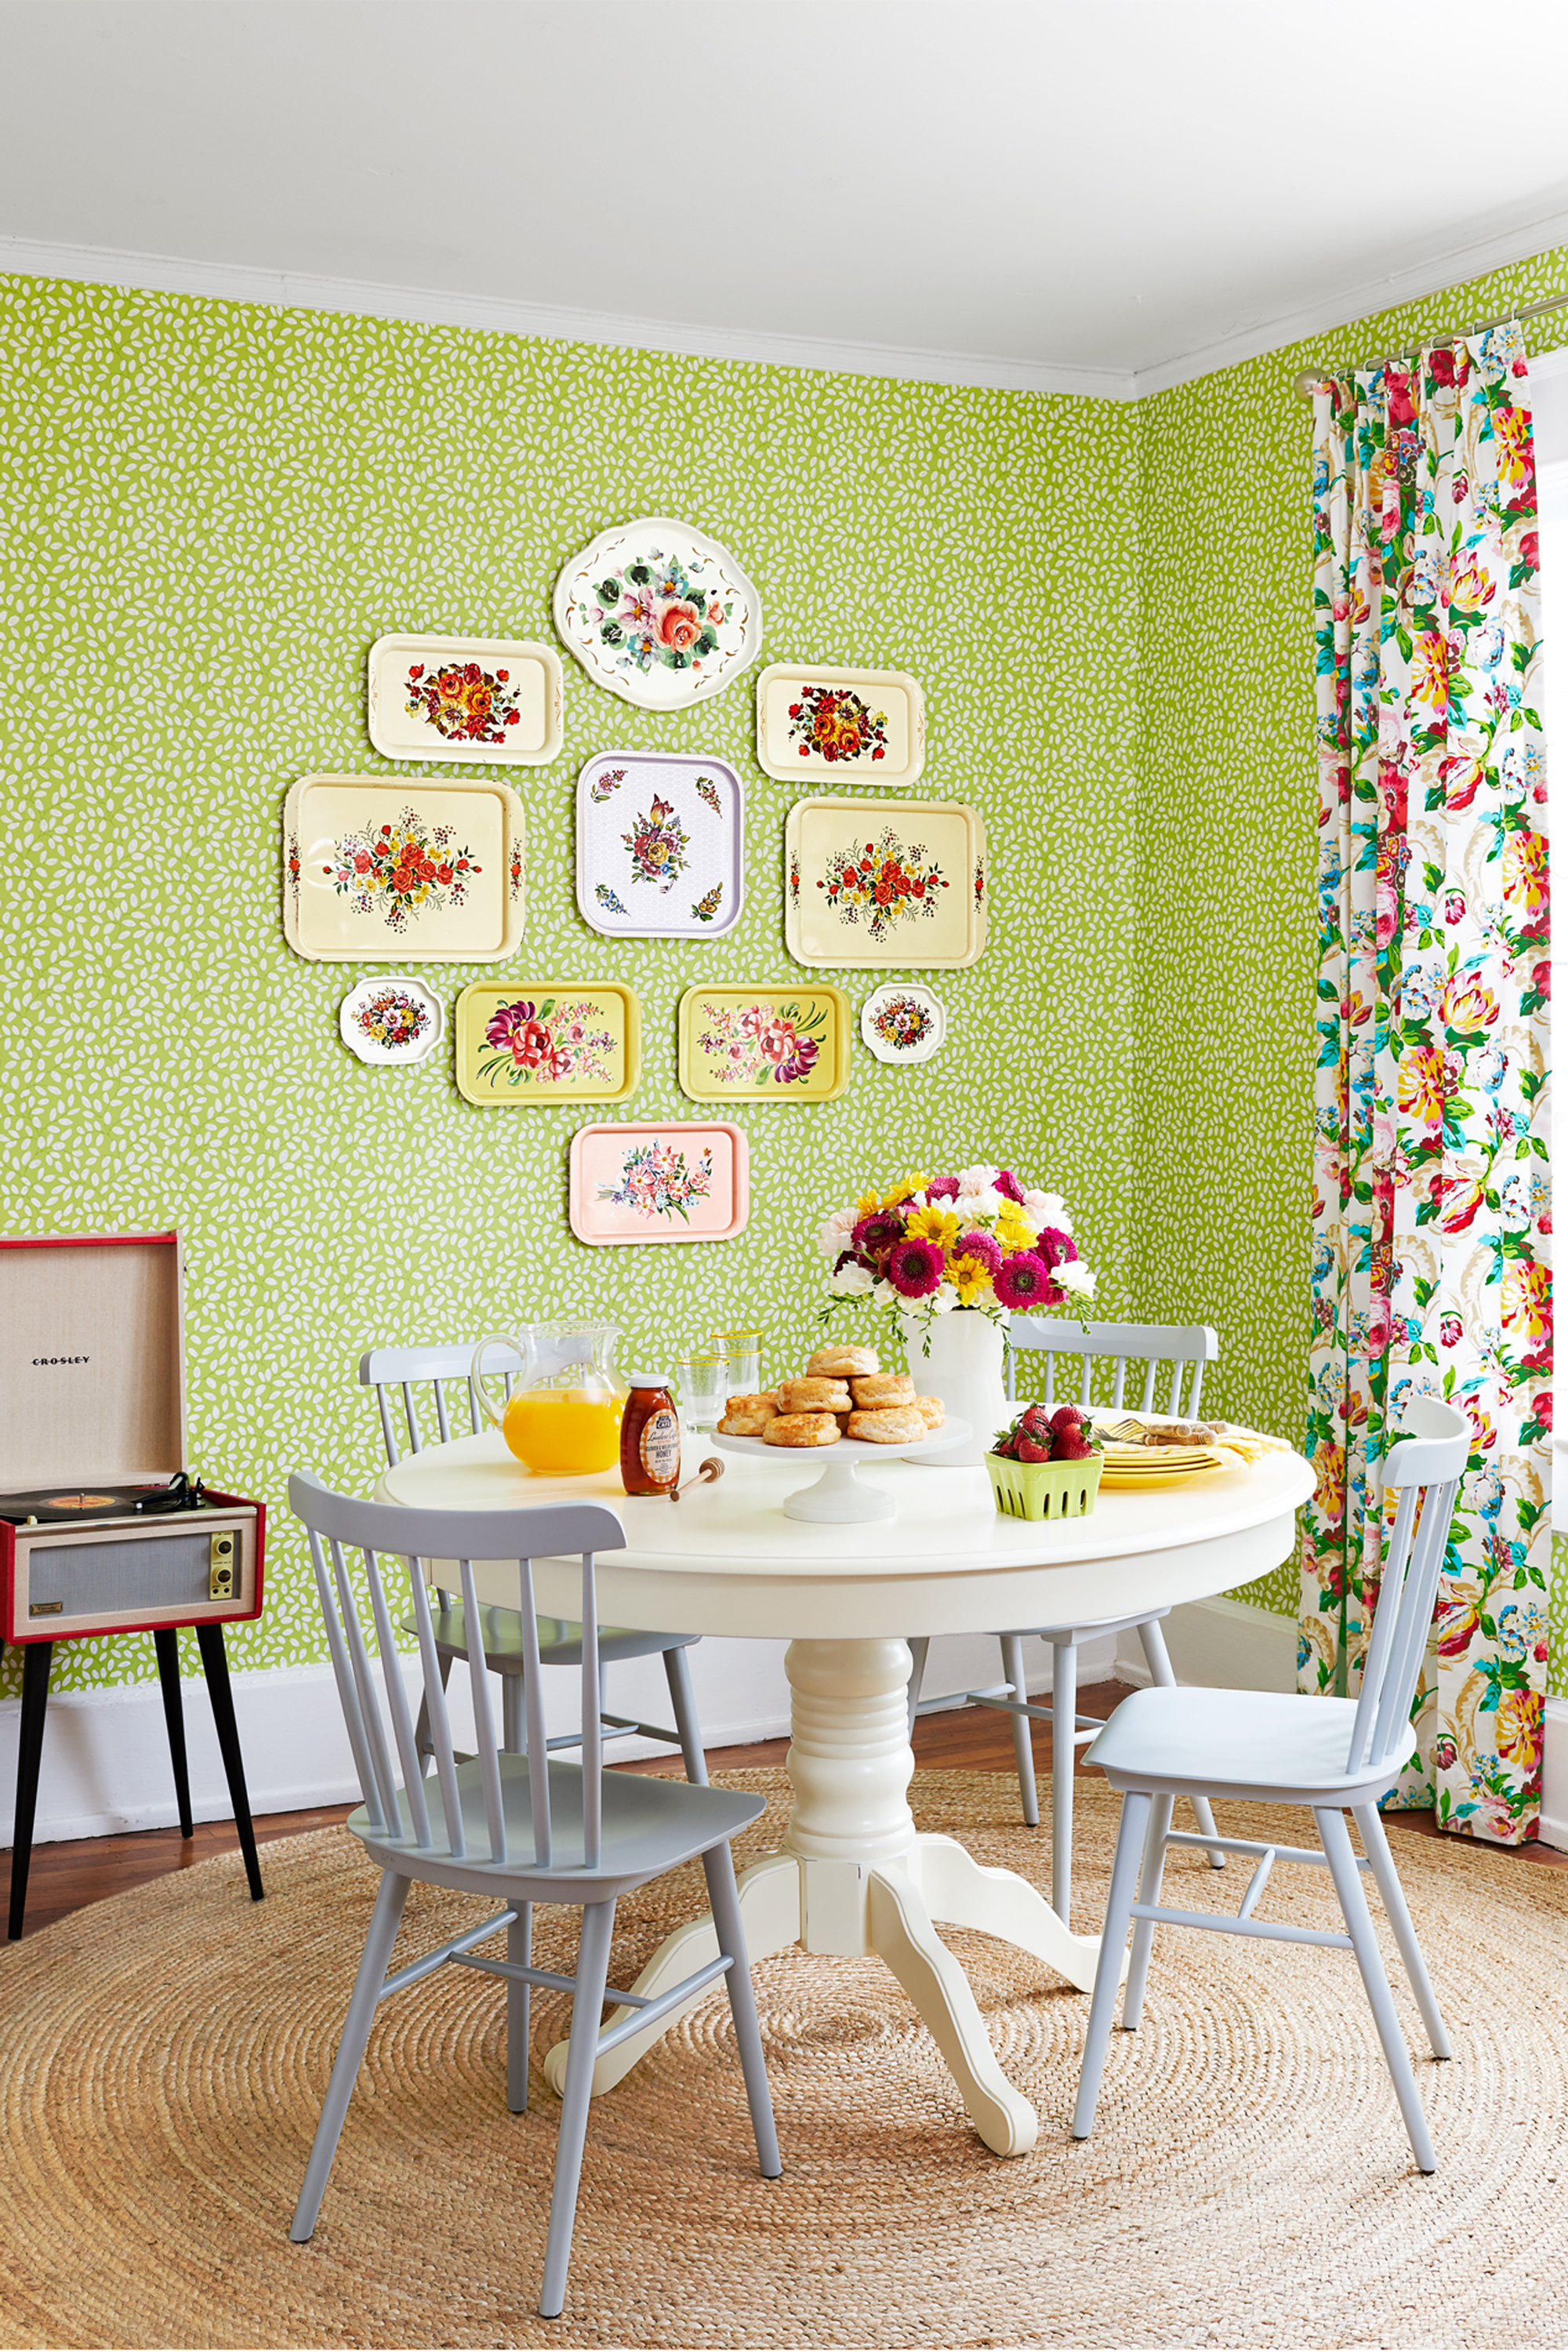 Decorating with green 40 ideas for green rooms and home decor